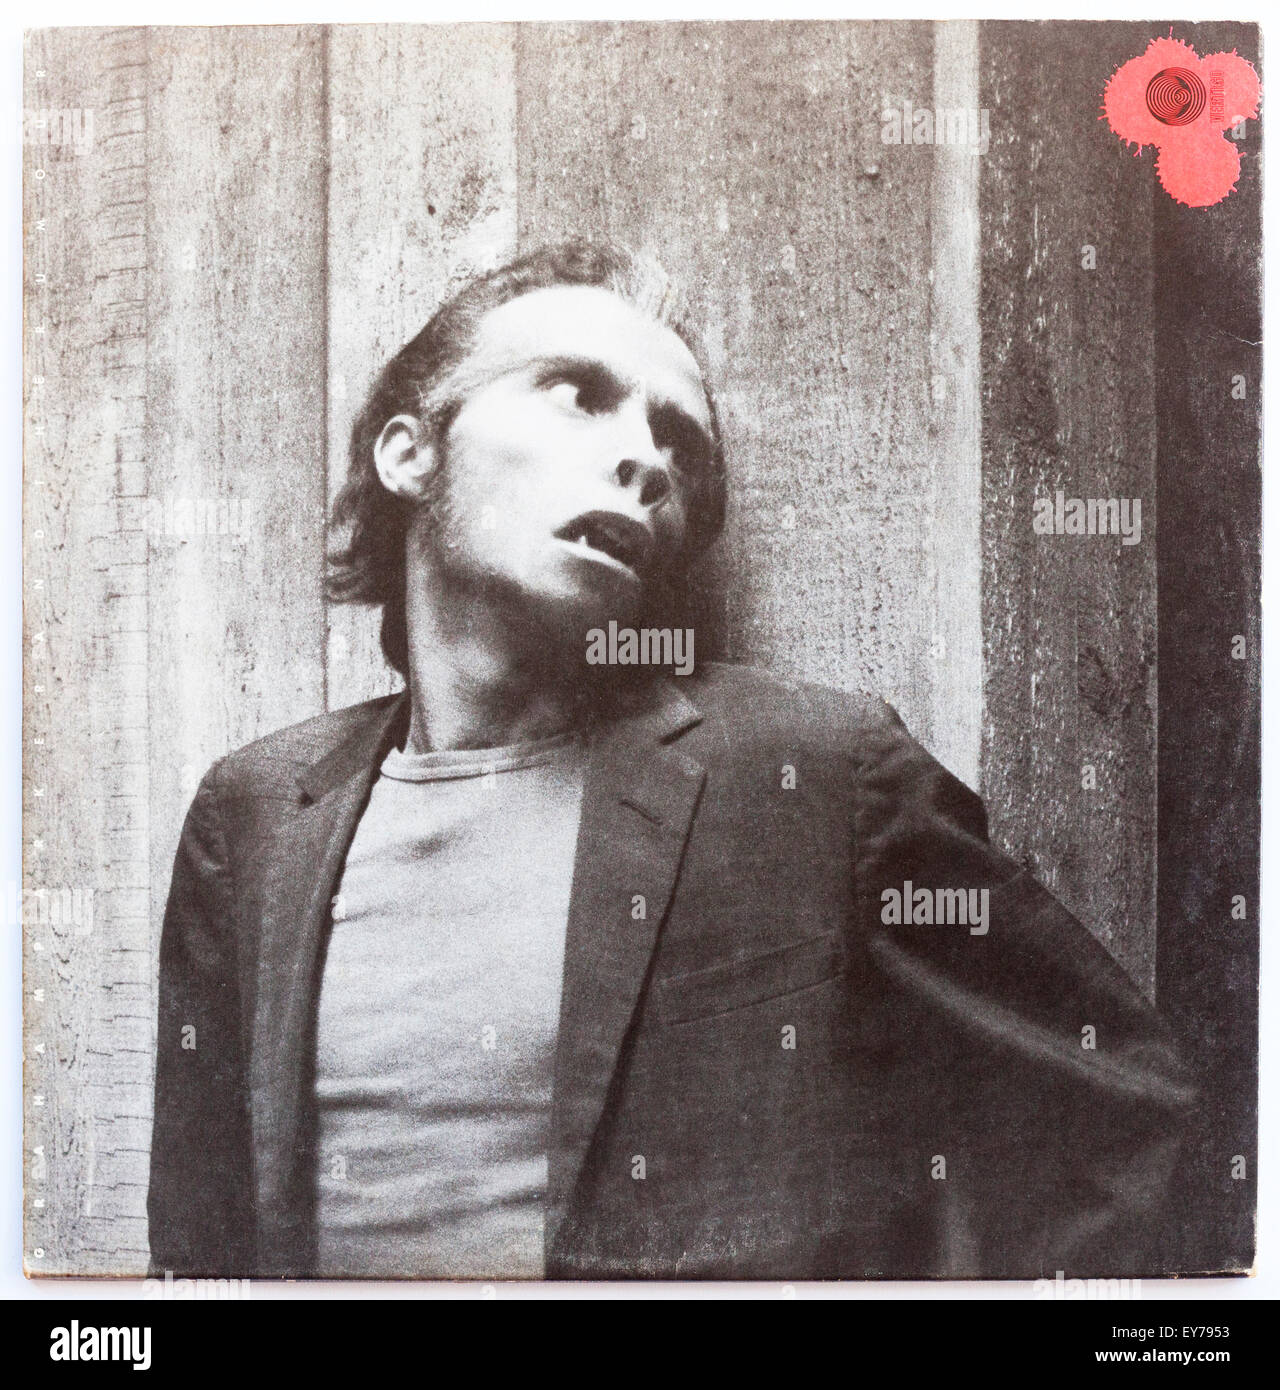 Cover Of Graham Parker And The Rumour Parkerilla 1978 Vinyl Album Stock Photo